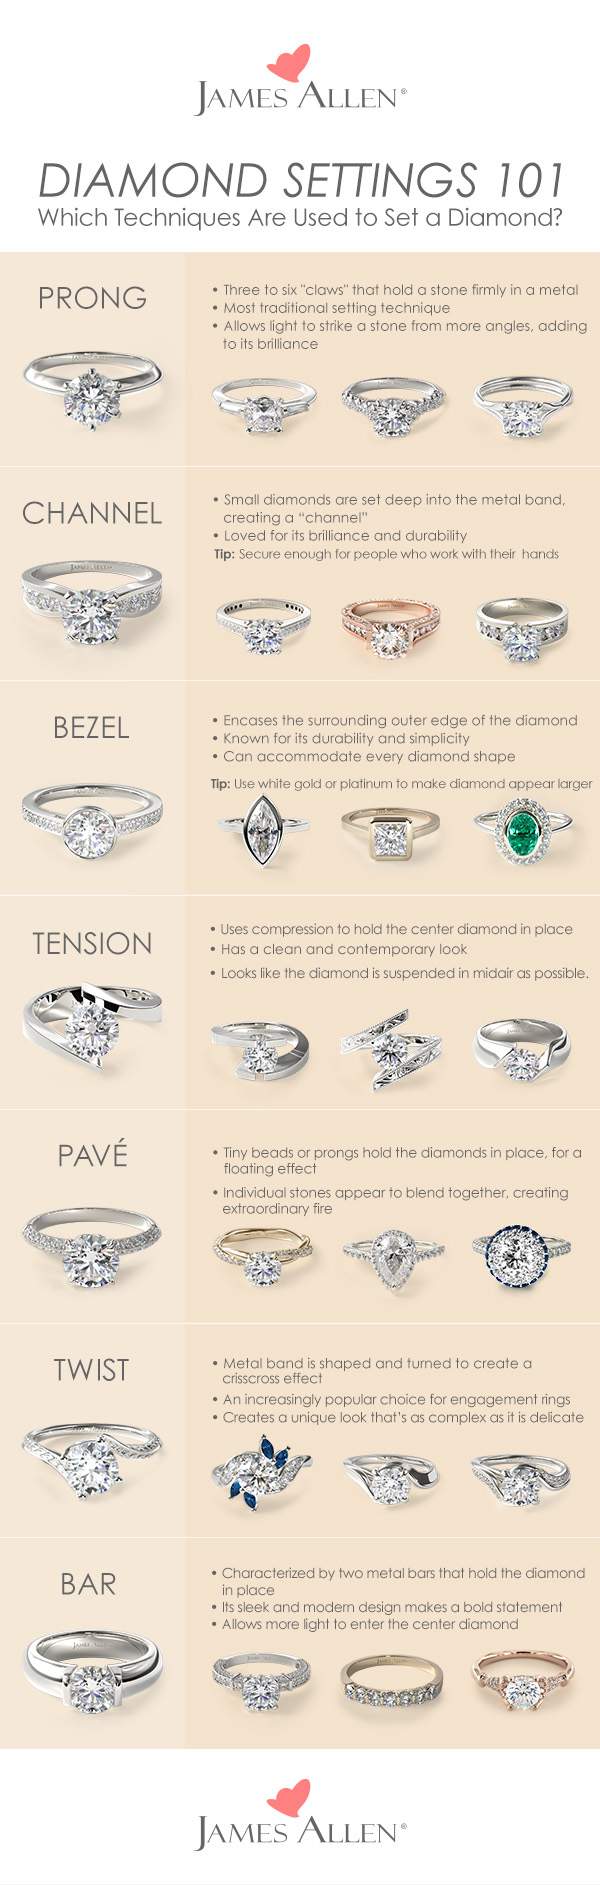 Pinterest Engagement Rings 101 - how to find the perfect ring setting